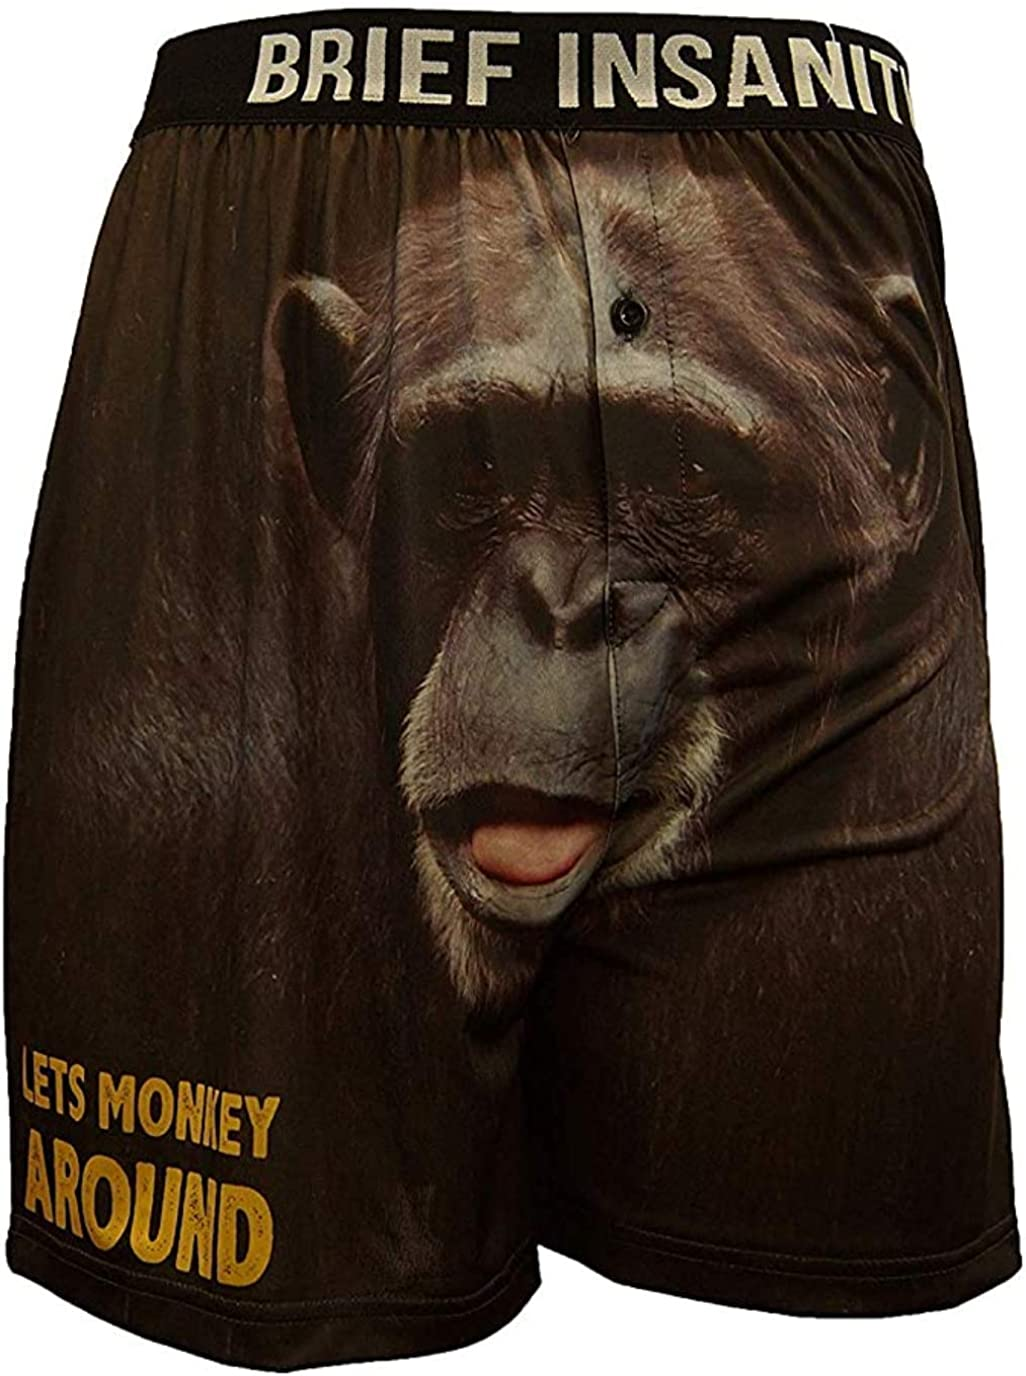 BRIEF INSANITY Monkey Boxer Briefs for Men and Women | Animal Boxer Shorts - Soft, Comfy, Breathable Underwear